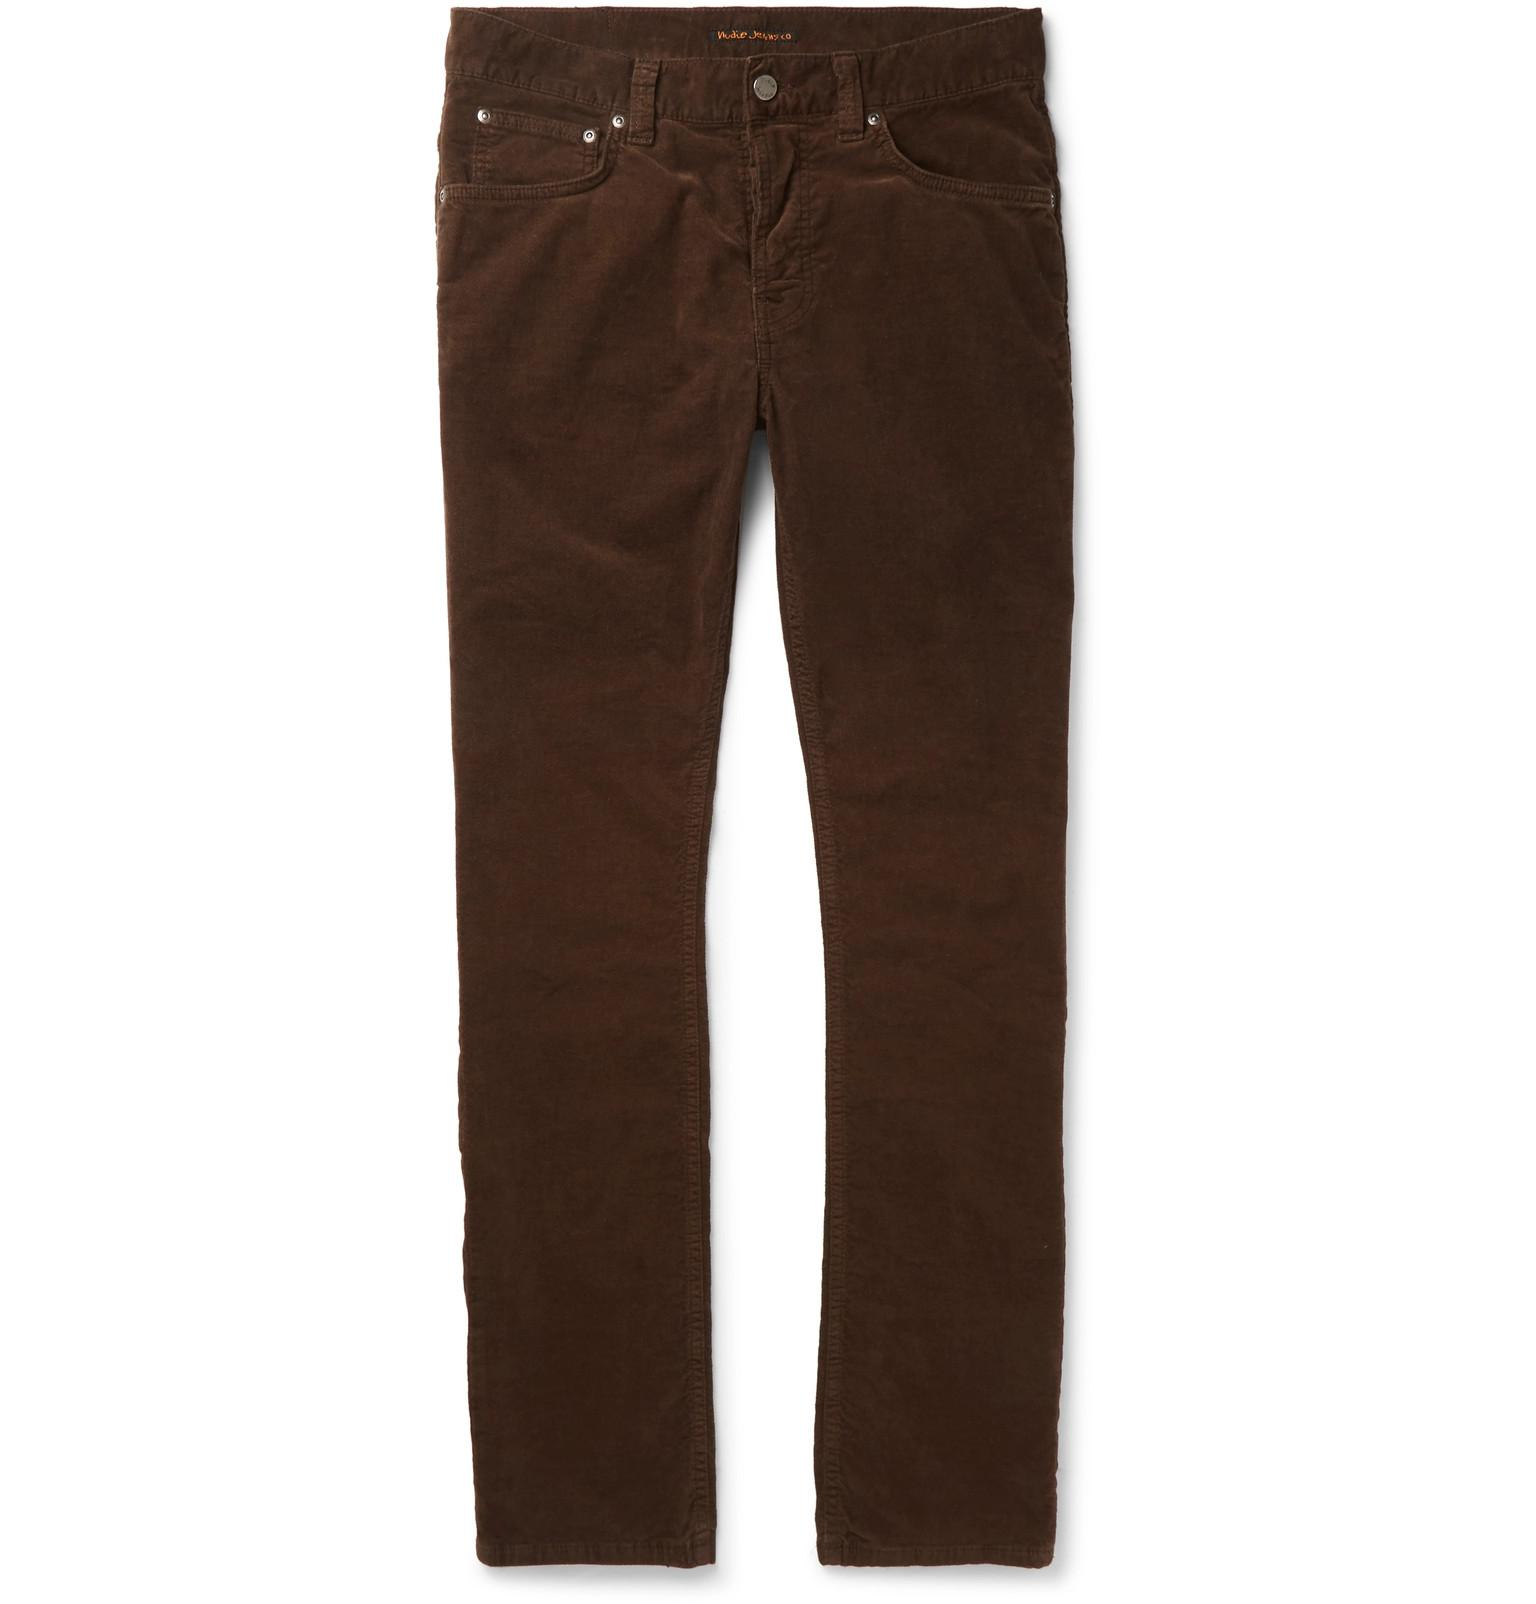 Discount For Nice Grim Tim Sim-fit Organic Stretch-velvet Jeans Nudie Jeans Outlet From China hwzaAi